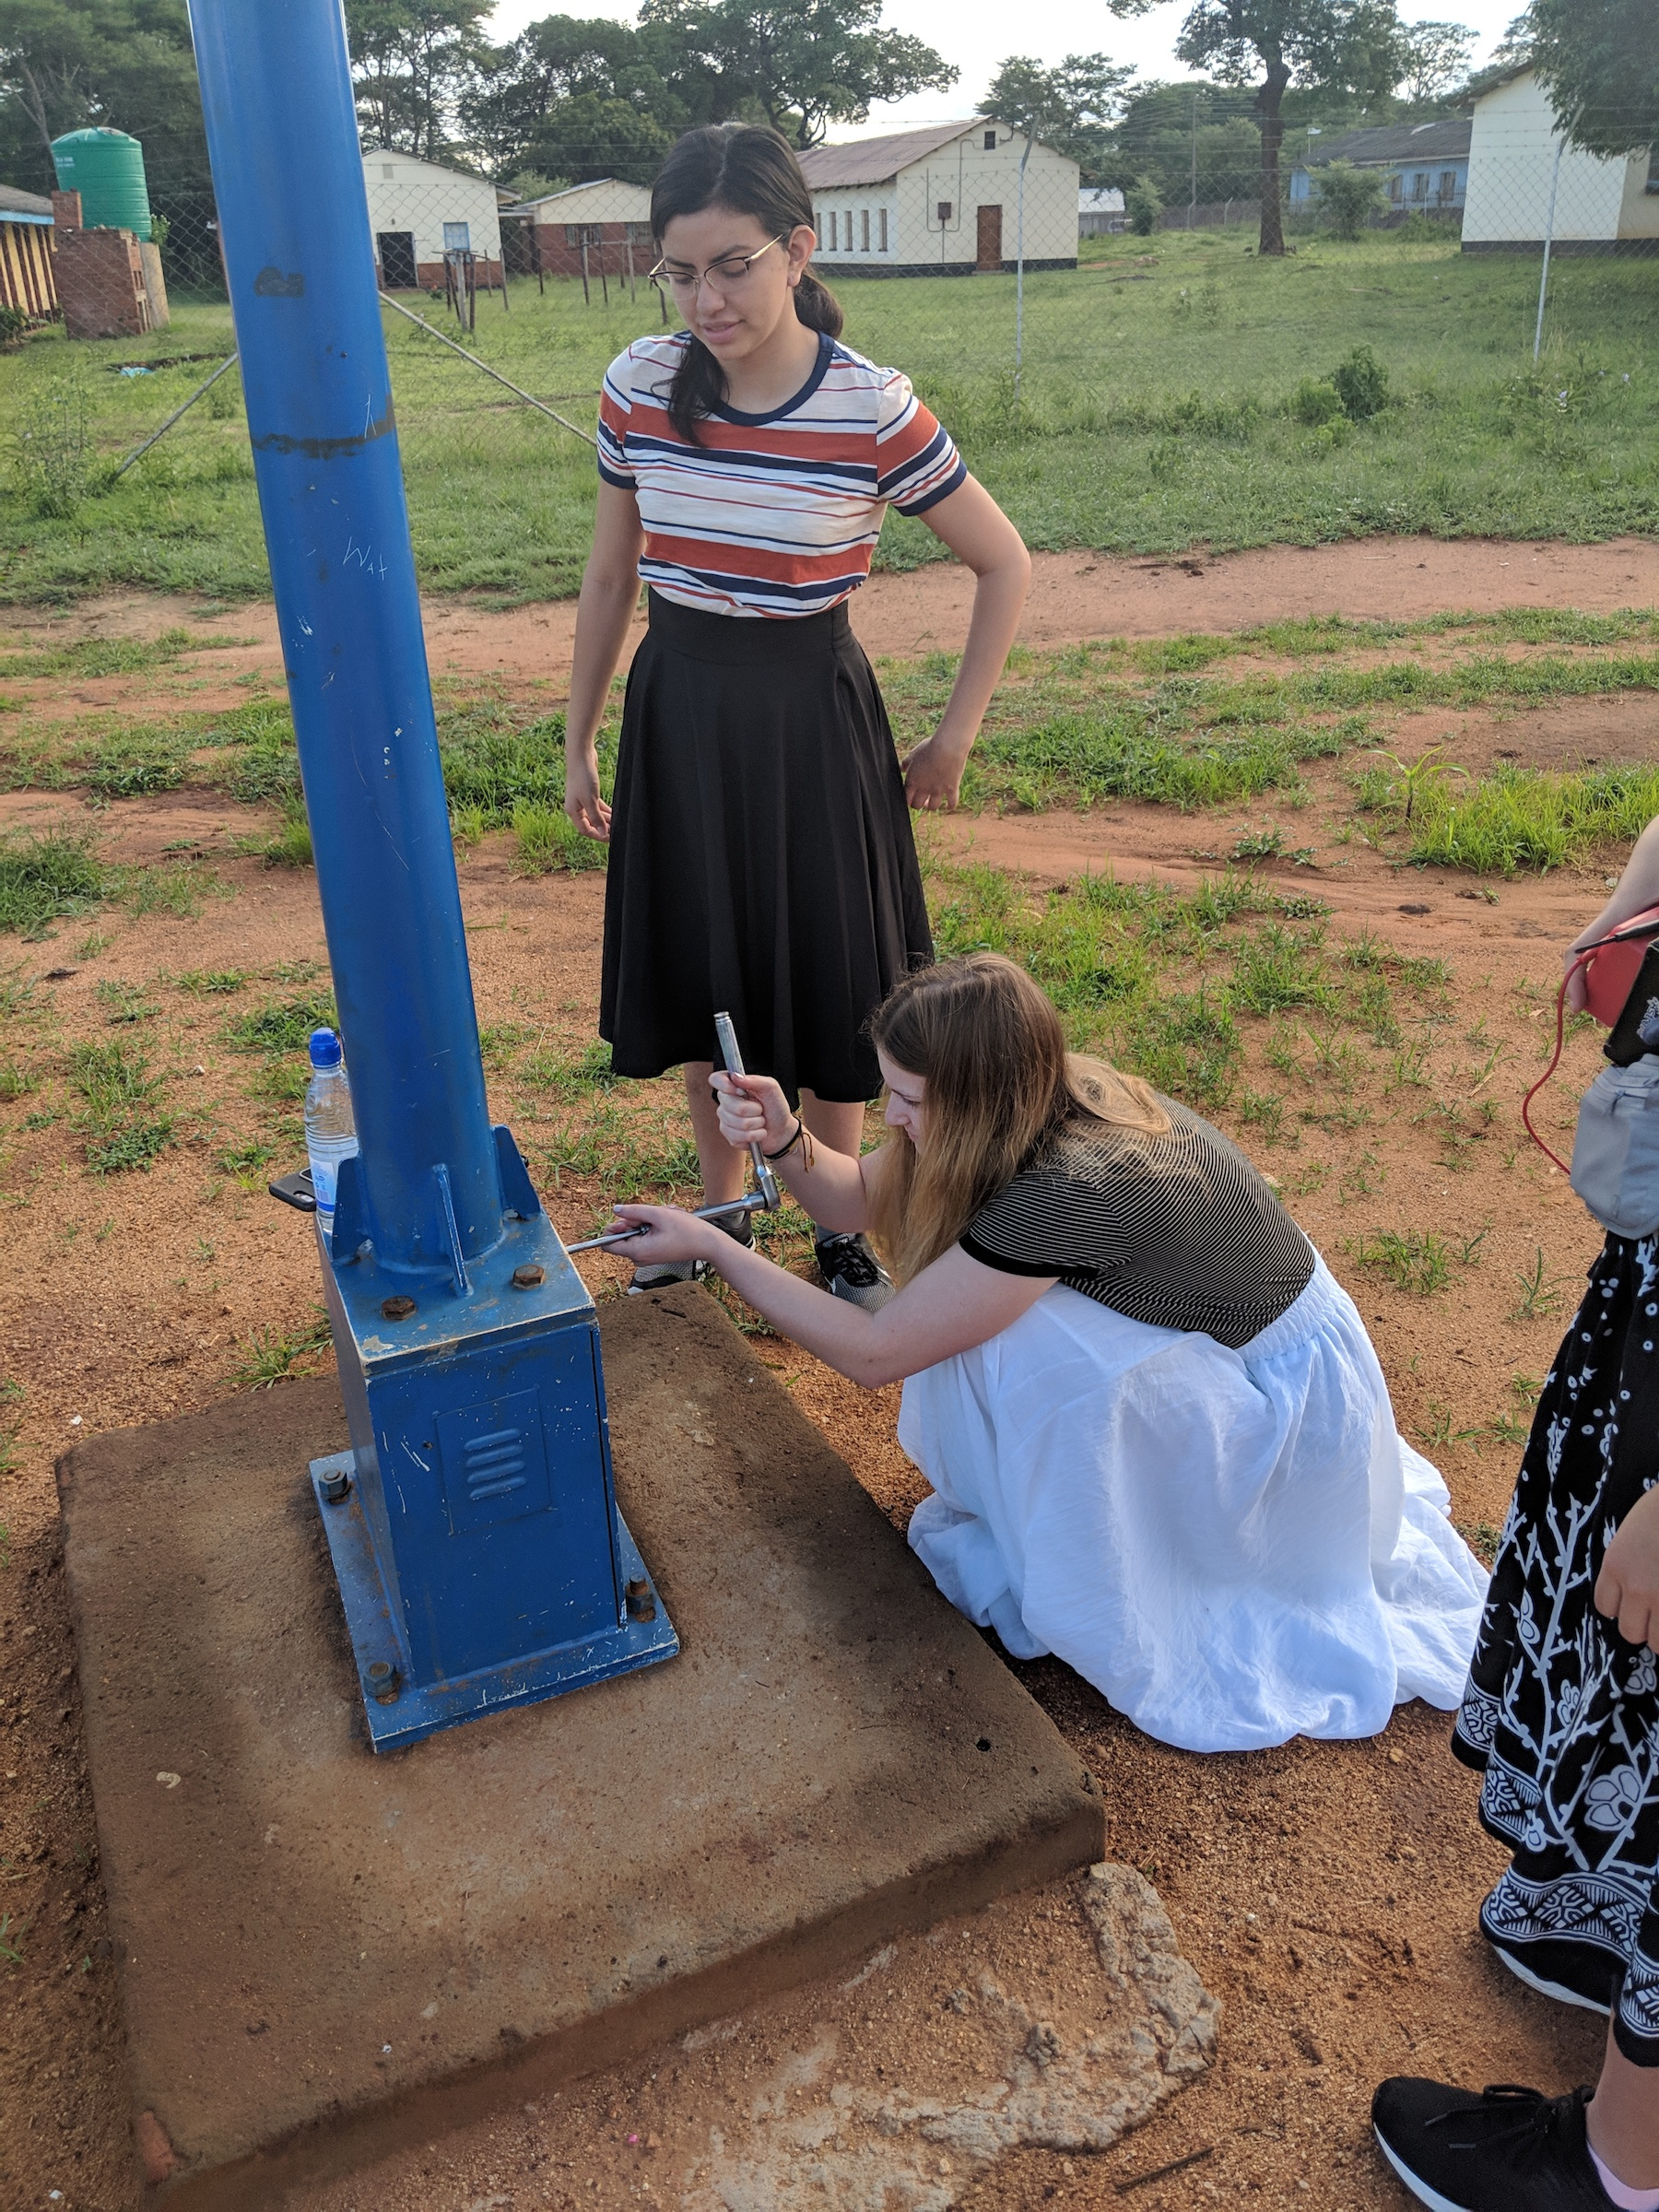 Melina Driscoll and  Ashley Burbano, team members with Engineers Without Borders USA,  inspect lights at Nyadire Mission. Photo courtesy of Chenayi Kumuterera.